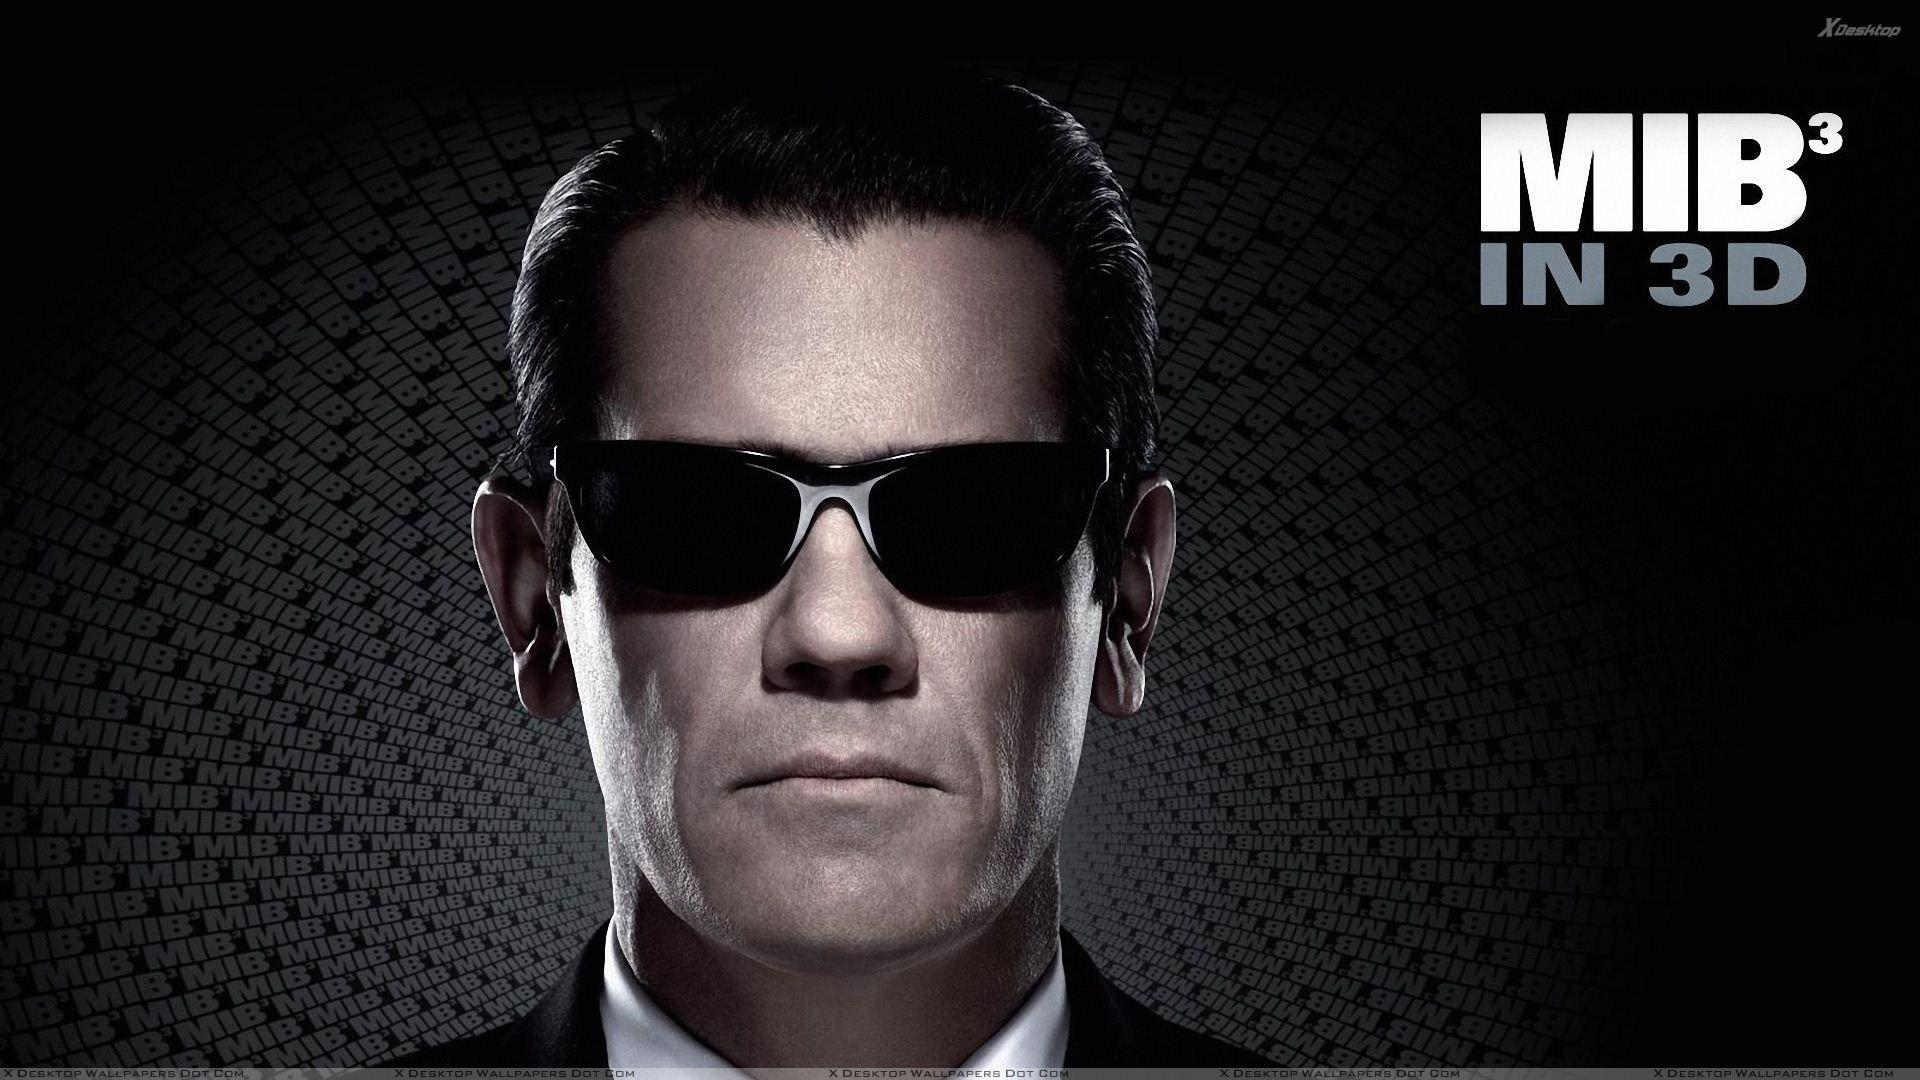 Josh Brolin Wallpapers, Photos & Images in HD